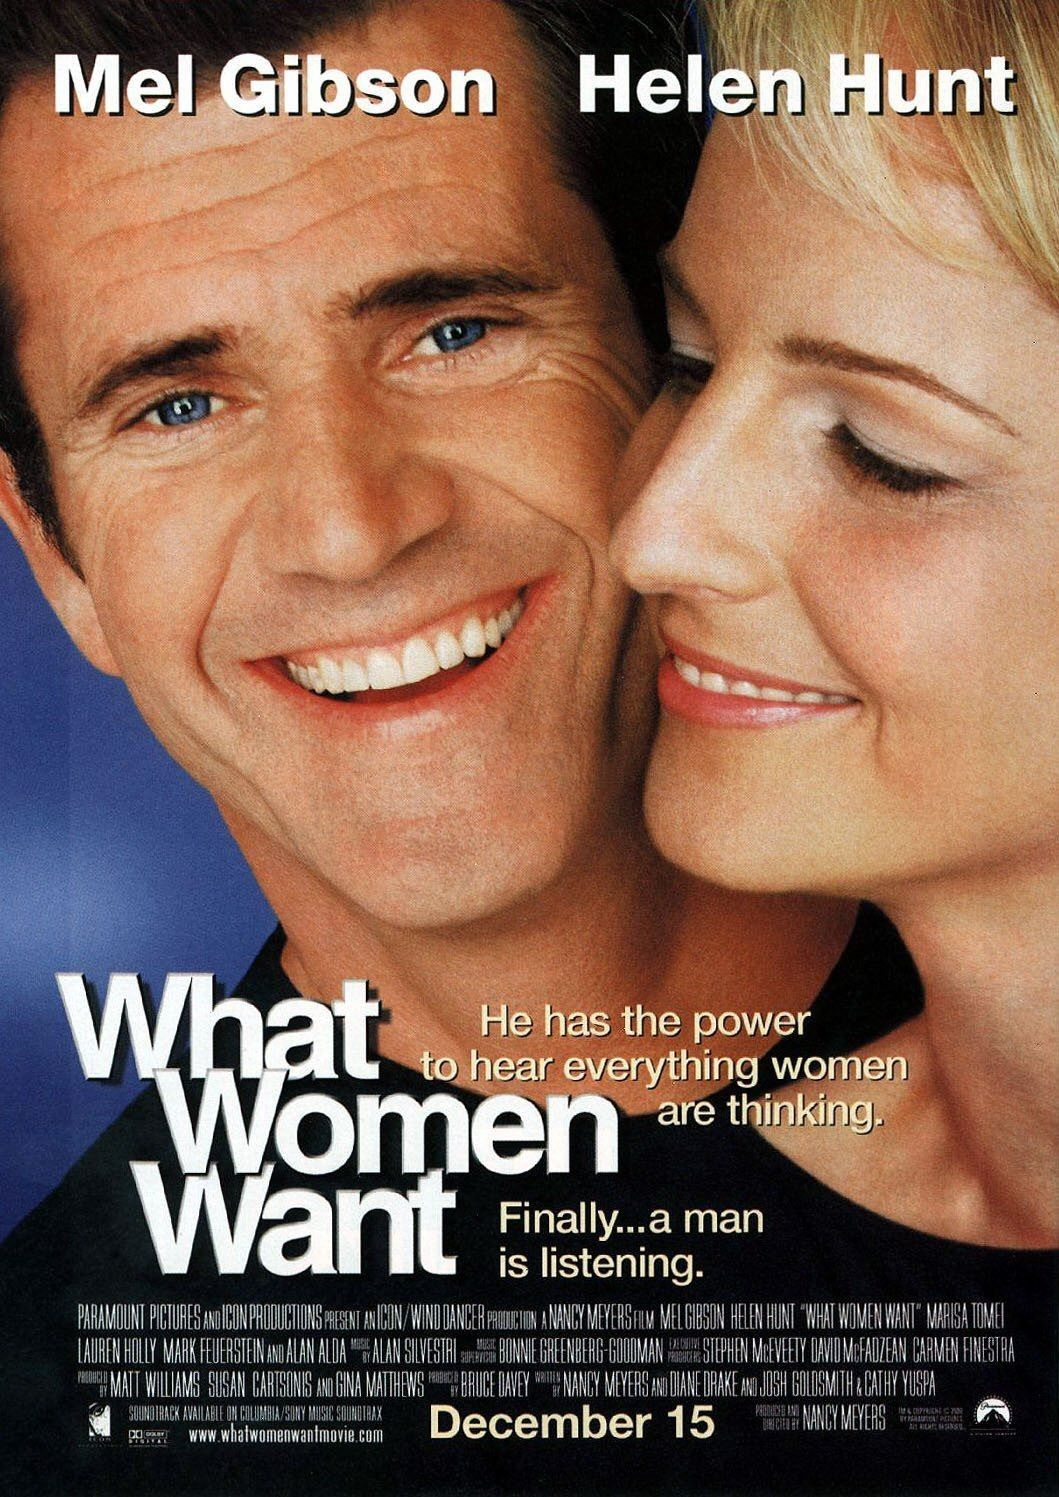 I Want to Be a Woman | What Women Want (2000): Image 66 of 68